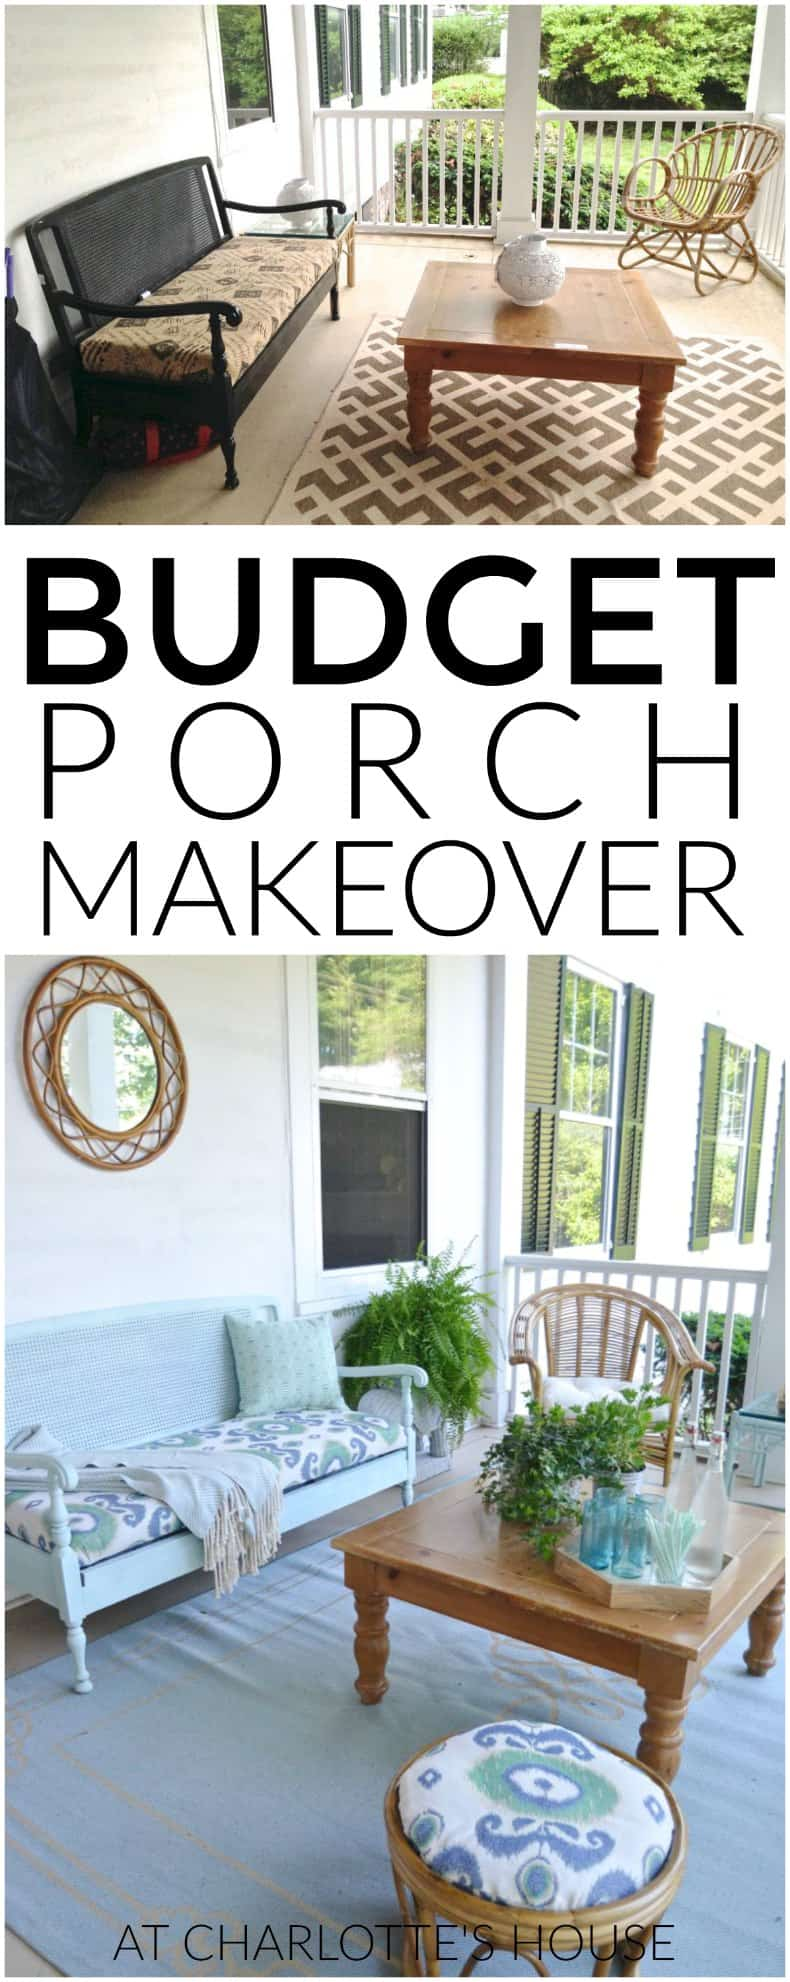 This porch got an entire makeover thanks to some elbow grease and some simple thrift store finds!